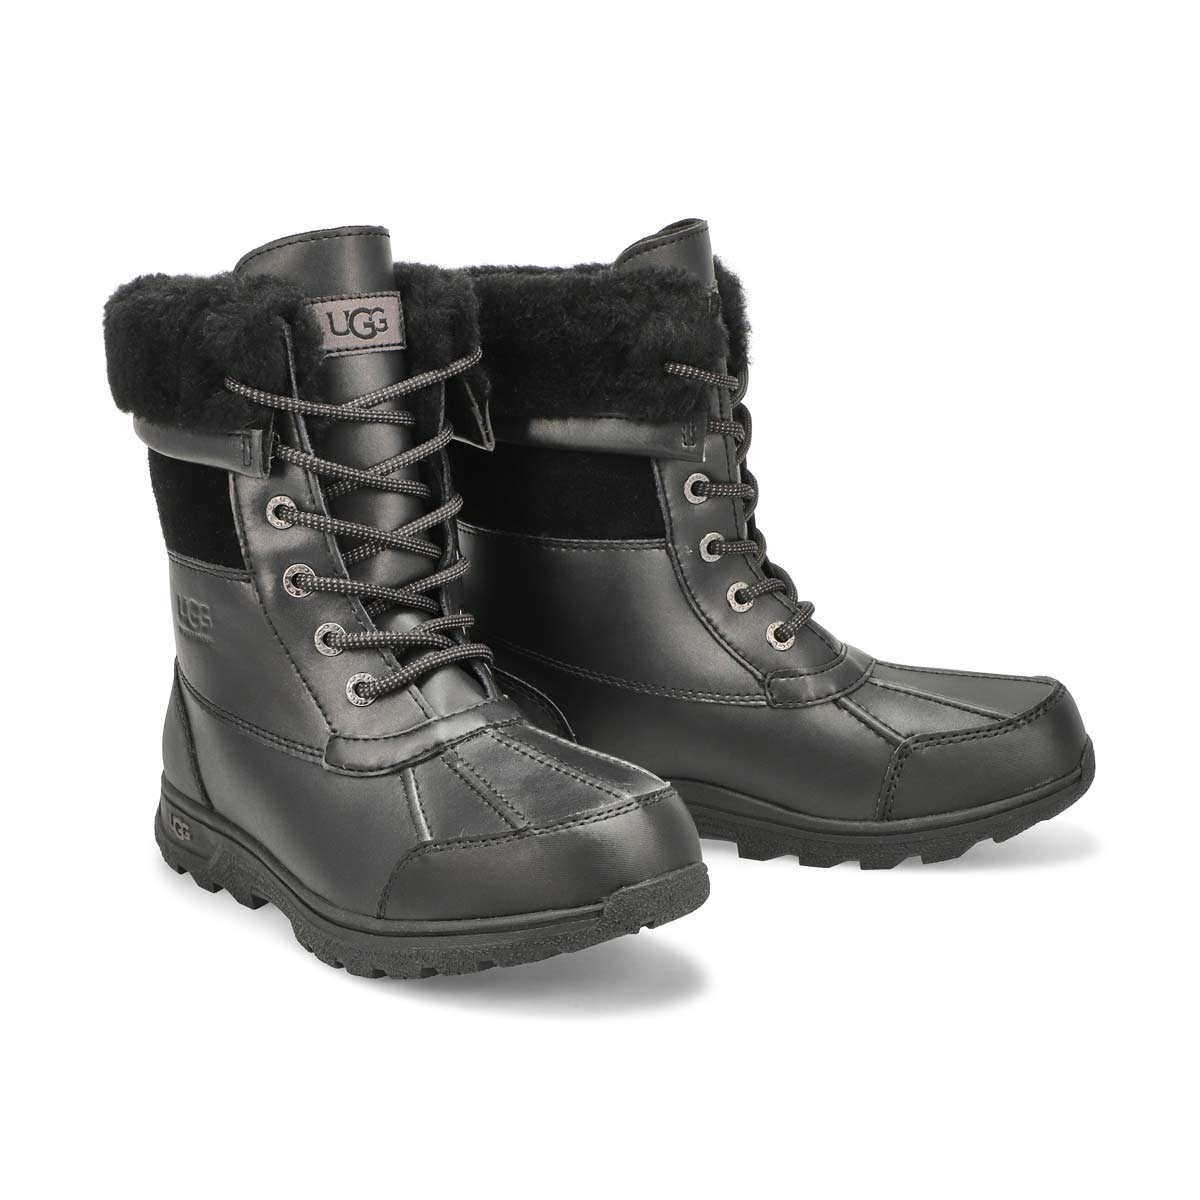 Kid's Butte II CWR Waterproof Winter Boot - Black